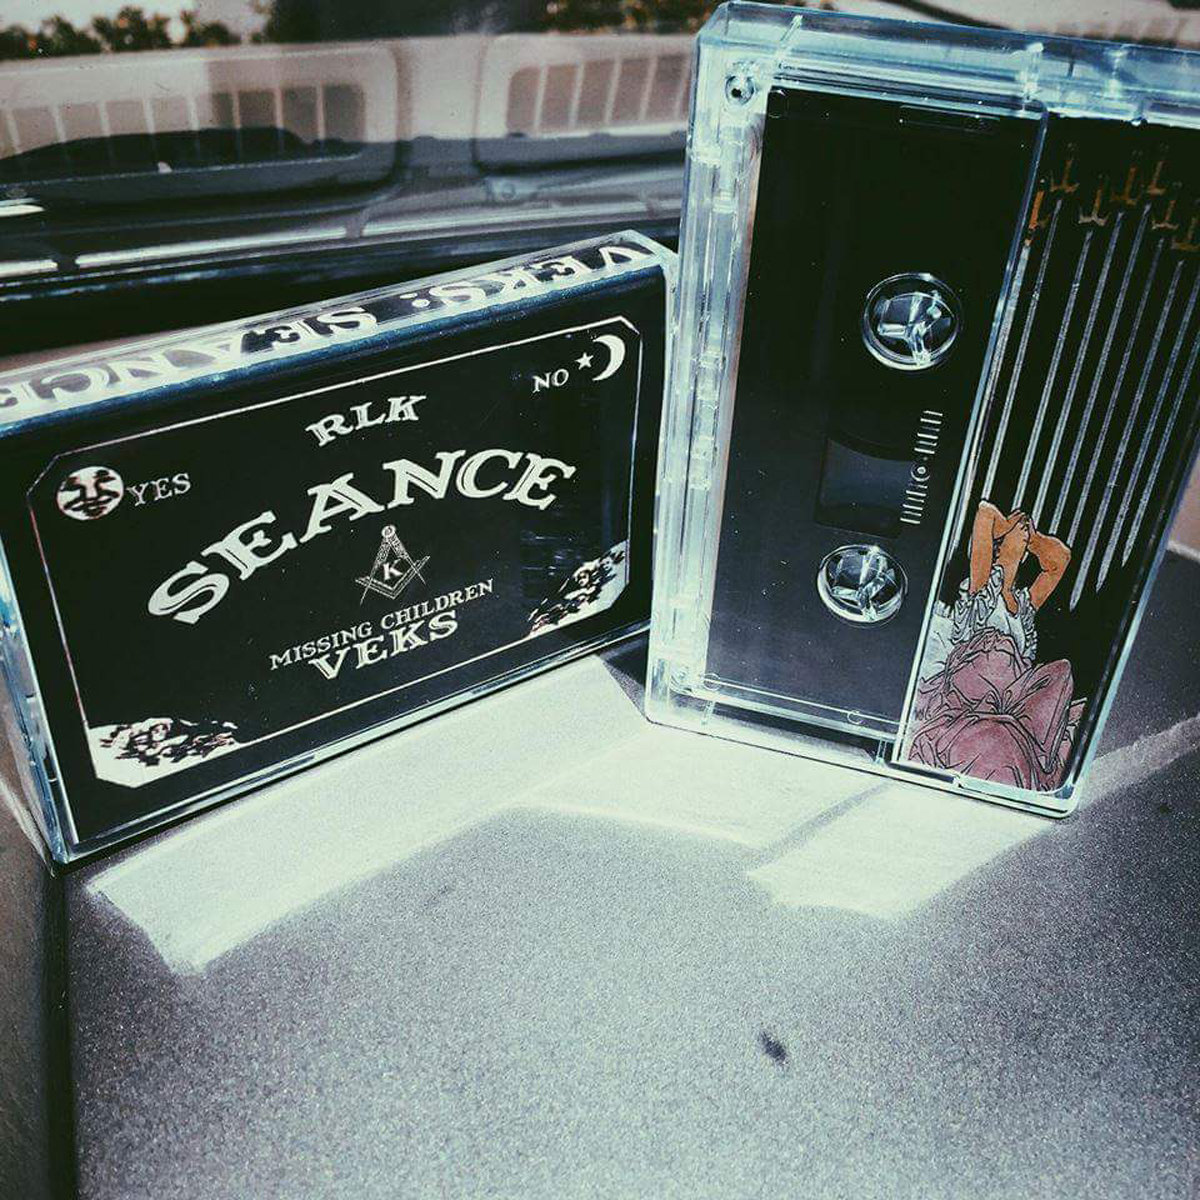 Very Limited Edition Cassette Only 50 Available On Black Cassettes With Color Print Inserts And Label